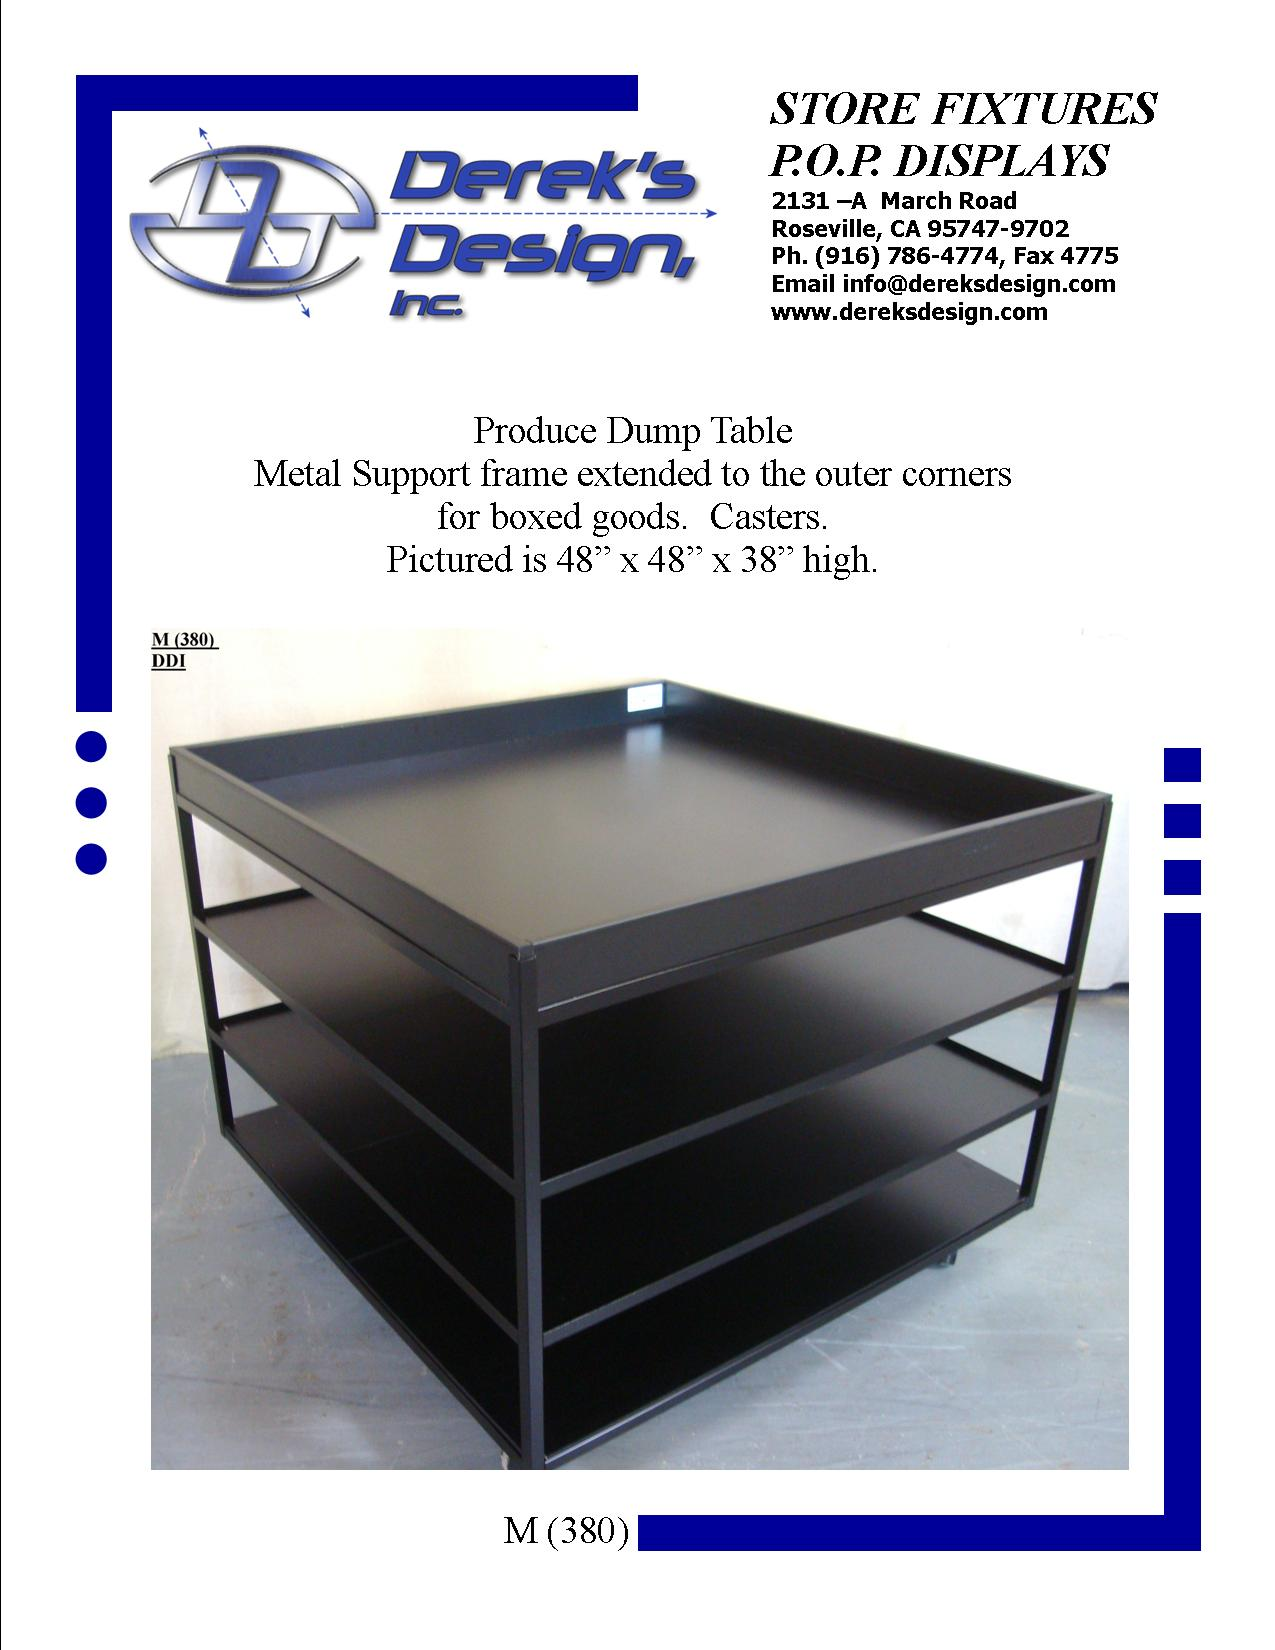 "<A HREF=""MAILTO:ORDERS@DEREKSDESIGN.COM?SUBJECT=M%20(380)&BODY=http://www.dereksdesign.com/gallery/metal-and-wire-displays/m-380/"">CLICK HERE FOR INQUIRY </A>"